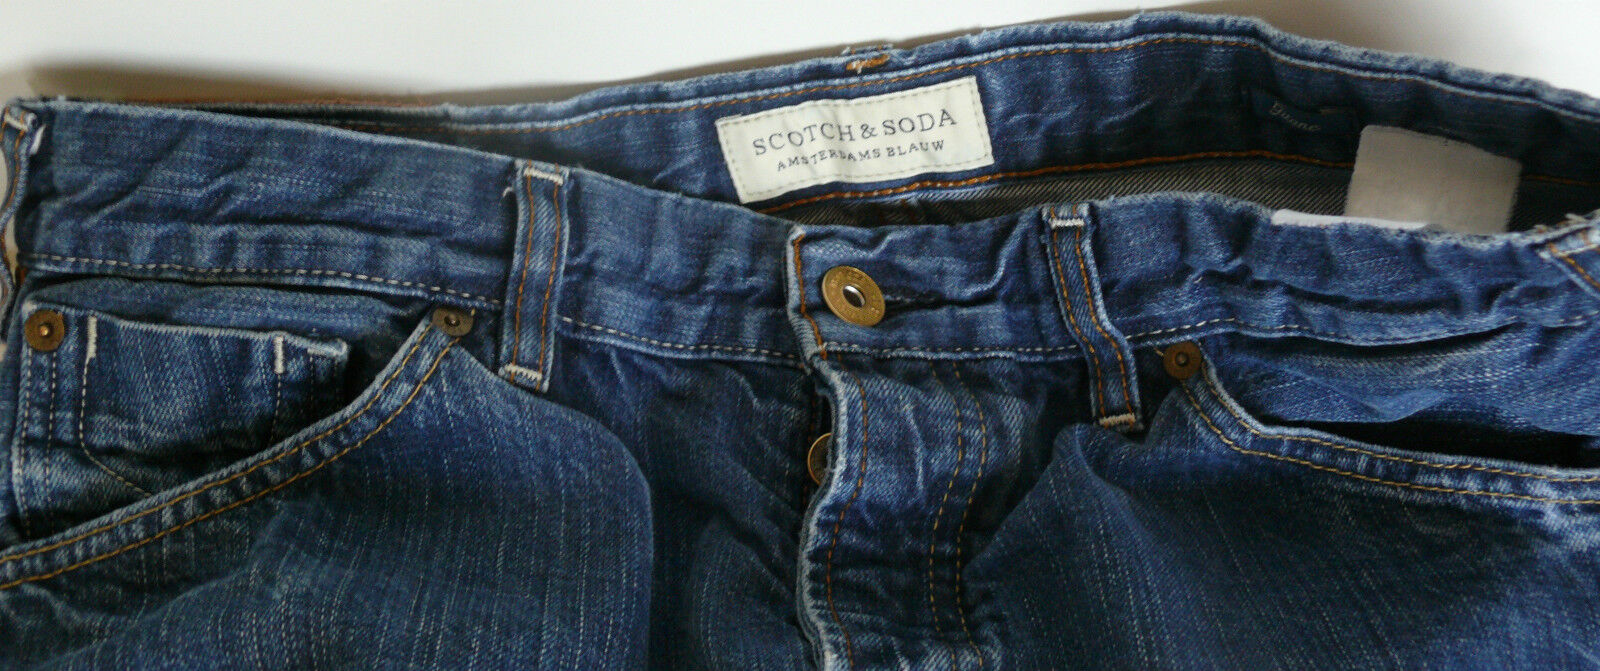 SCOTCH AND SODA MENS JEANS 32 X 32 AMSTERDAMS blueW HAPPY CHAP